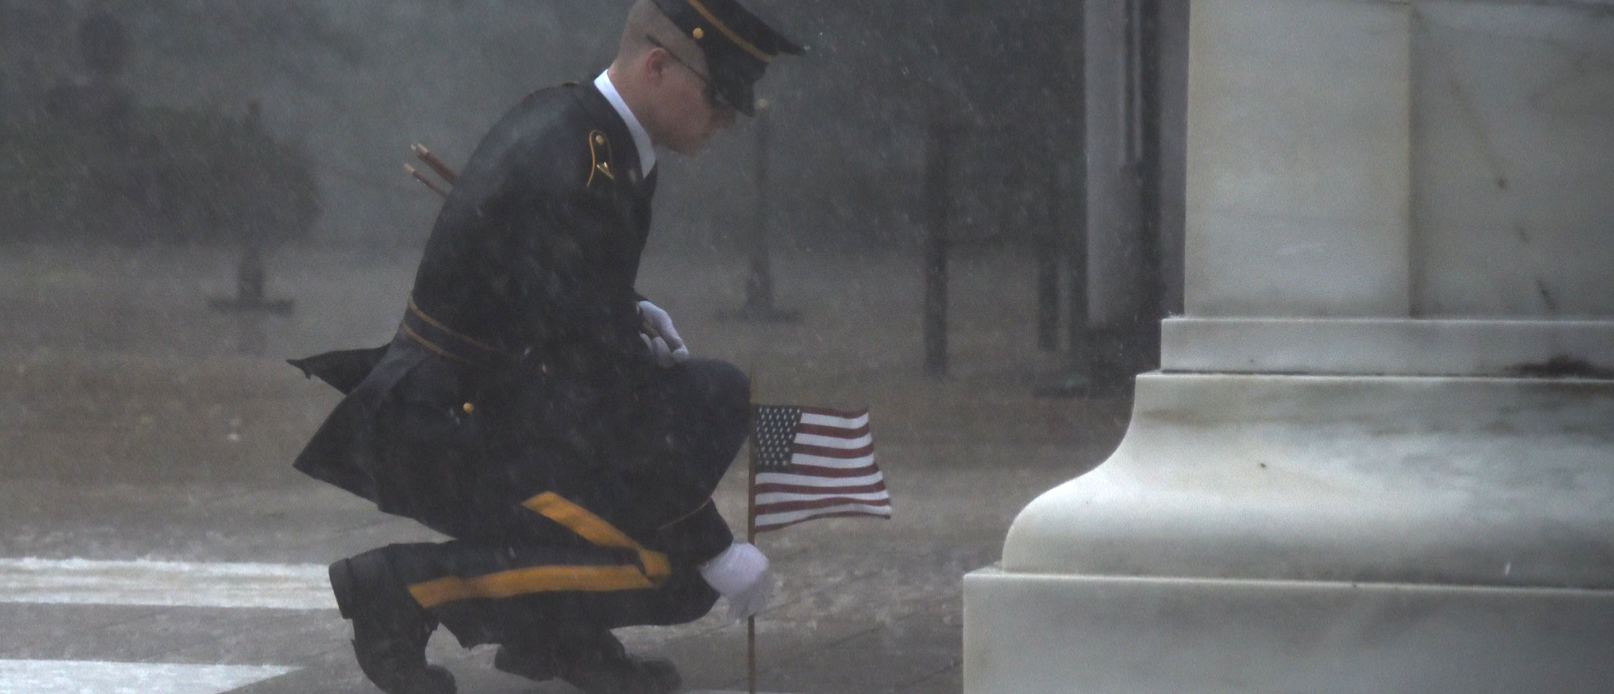 Member of the U.S. Army Old Guard places a flag before the Tomb of the Unknowns. Photo courtesy of the U.S. Army